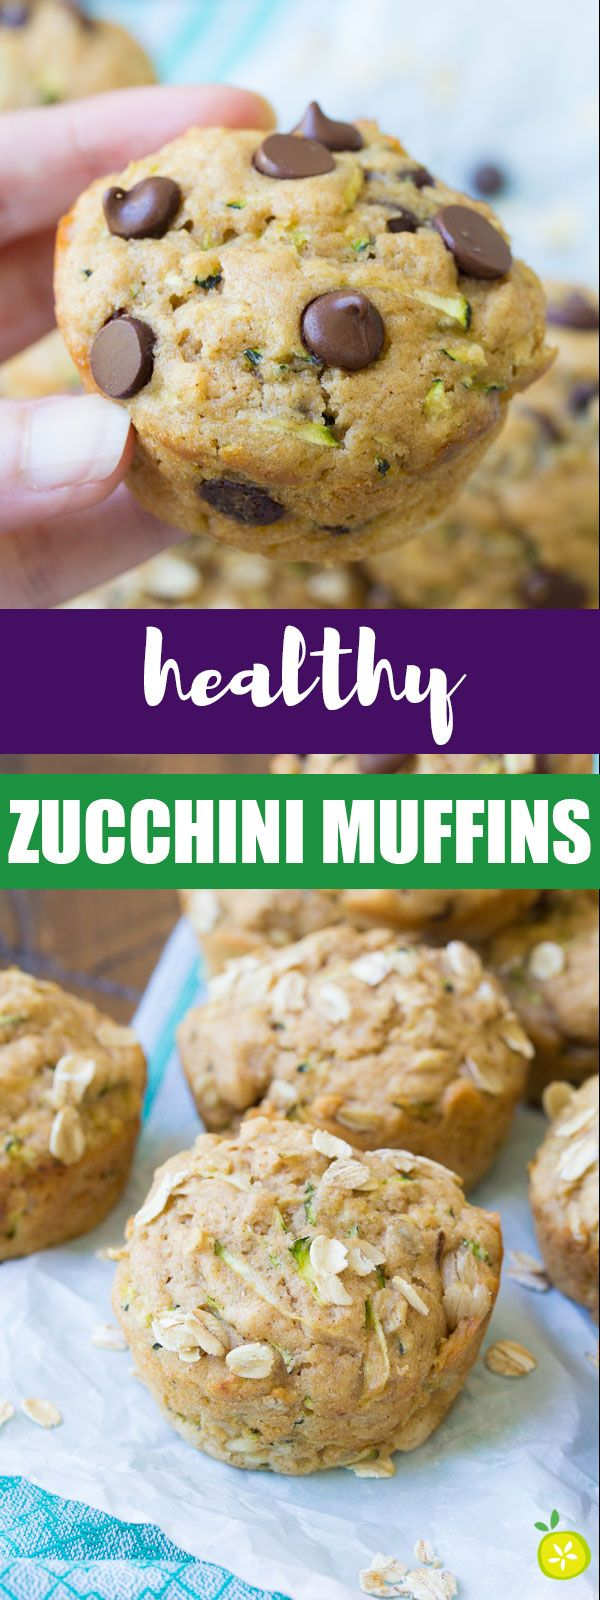 Healthy Zucchini Muffins Made With Chocolate Chips Or Oats Buttermilk Adds Amazing Zucchini Chocolate Chip Muffins Zucchini Muffins Healthy Zucchini Muffins